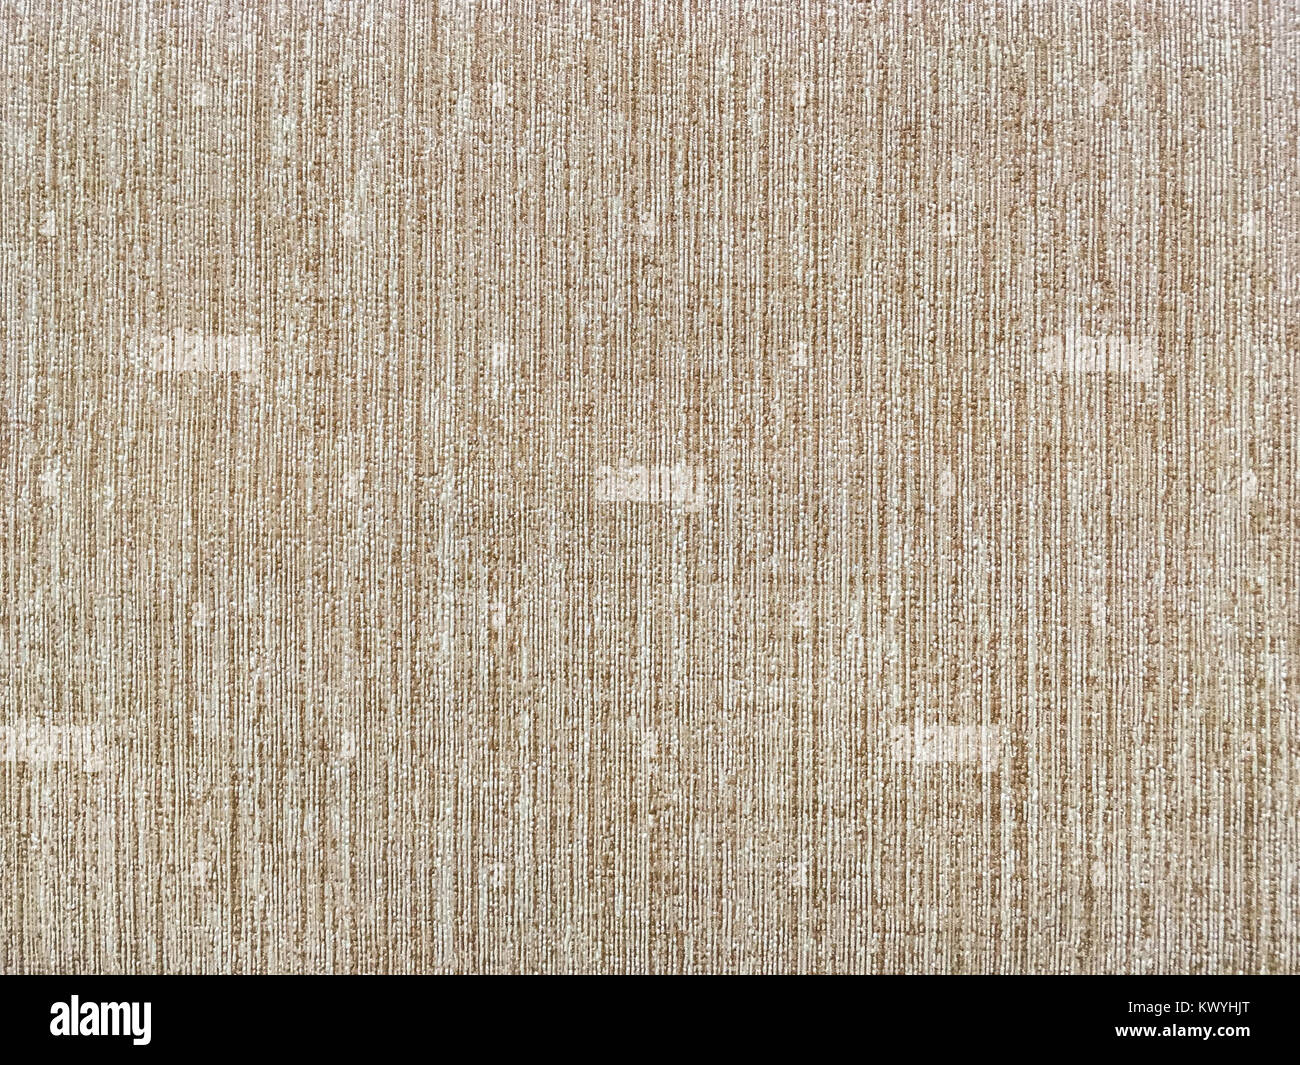 Texture Of Light Brown Wallpaper With A Stripped Pattern Beige Paper Surface Structure Close Up